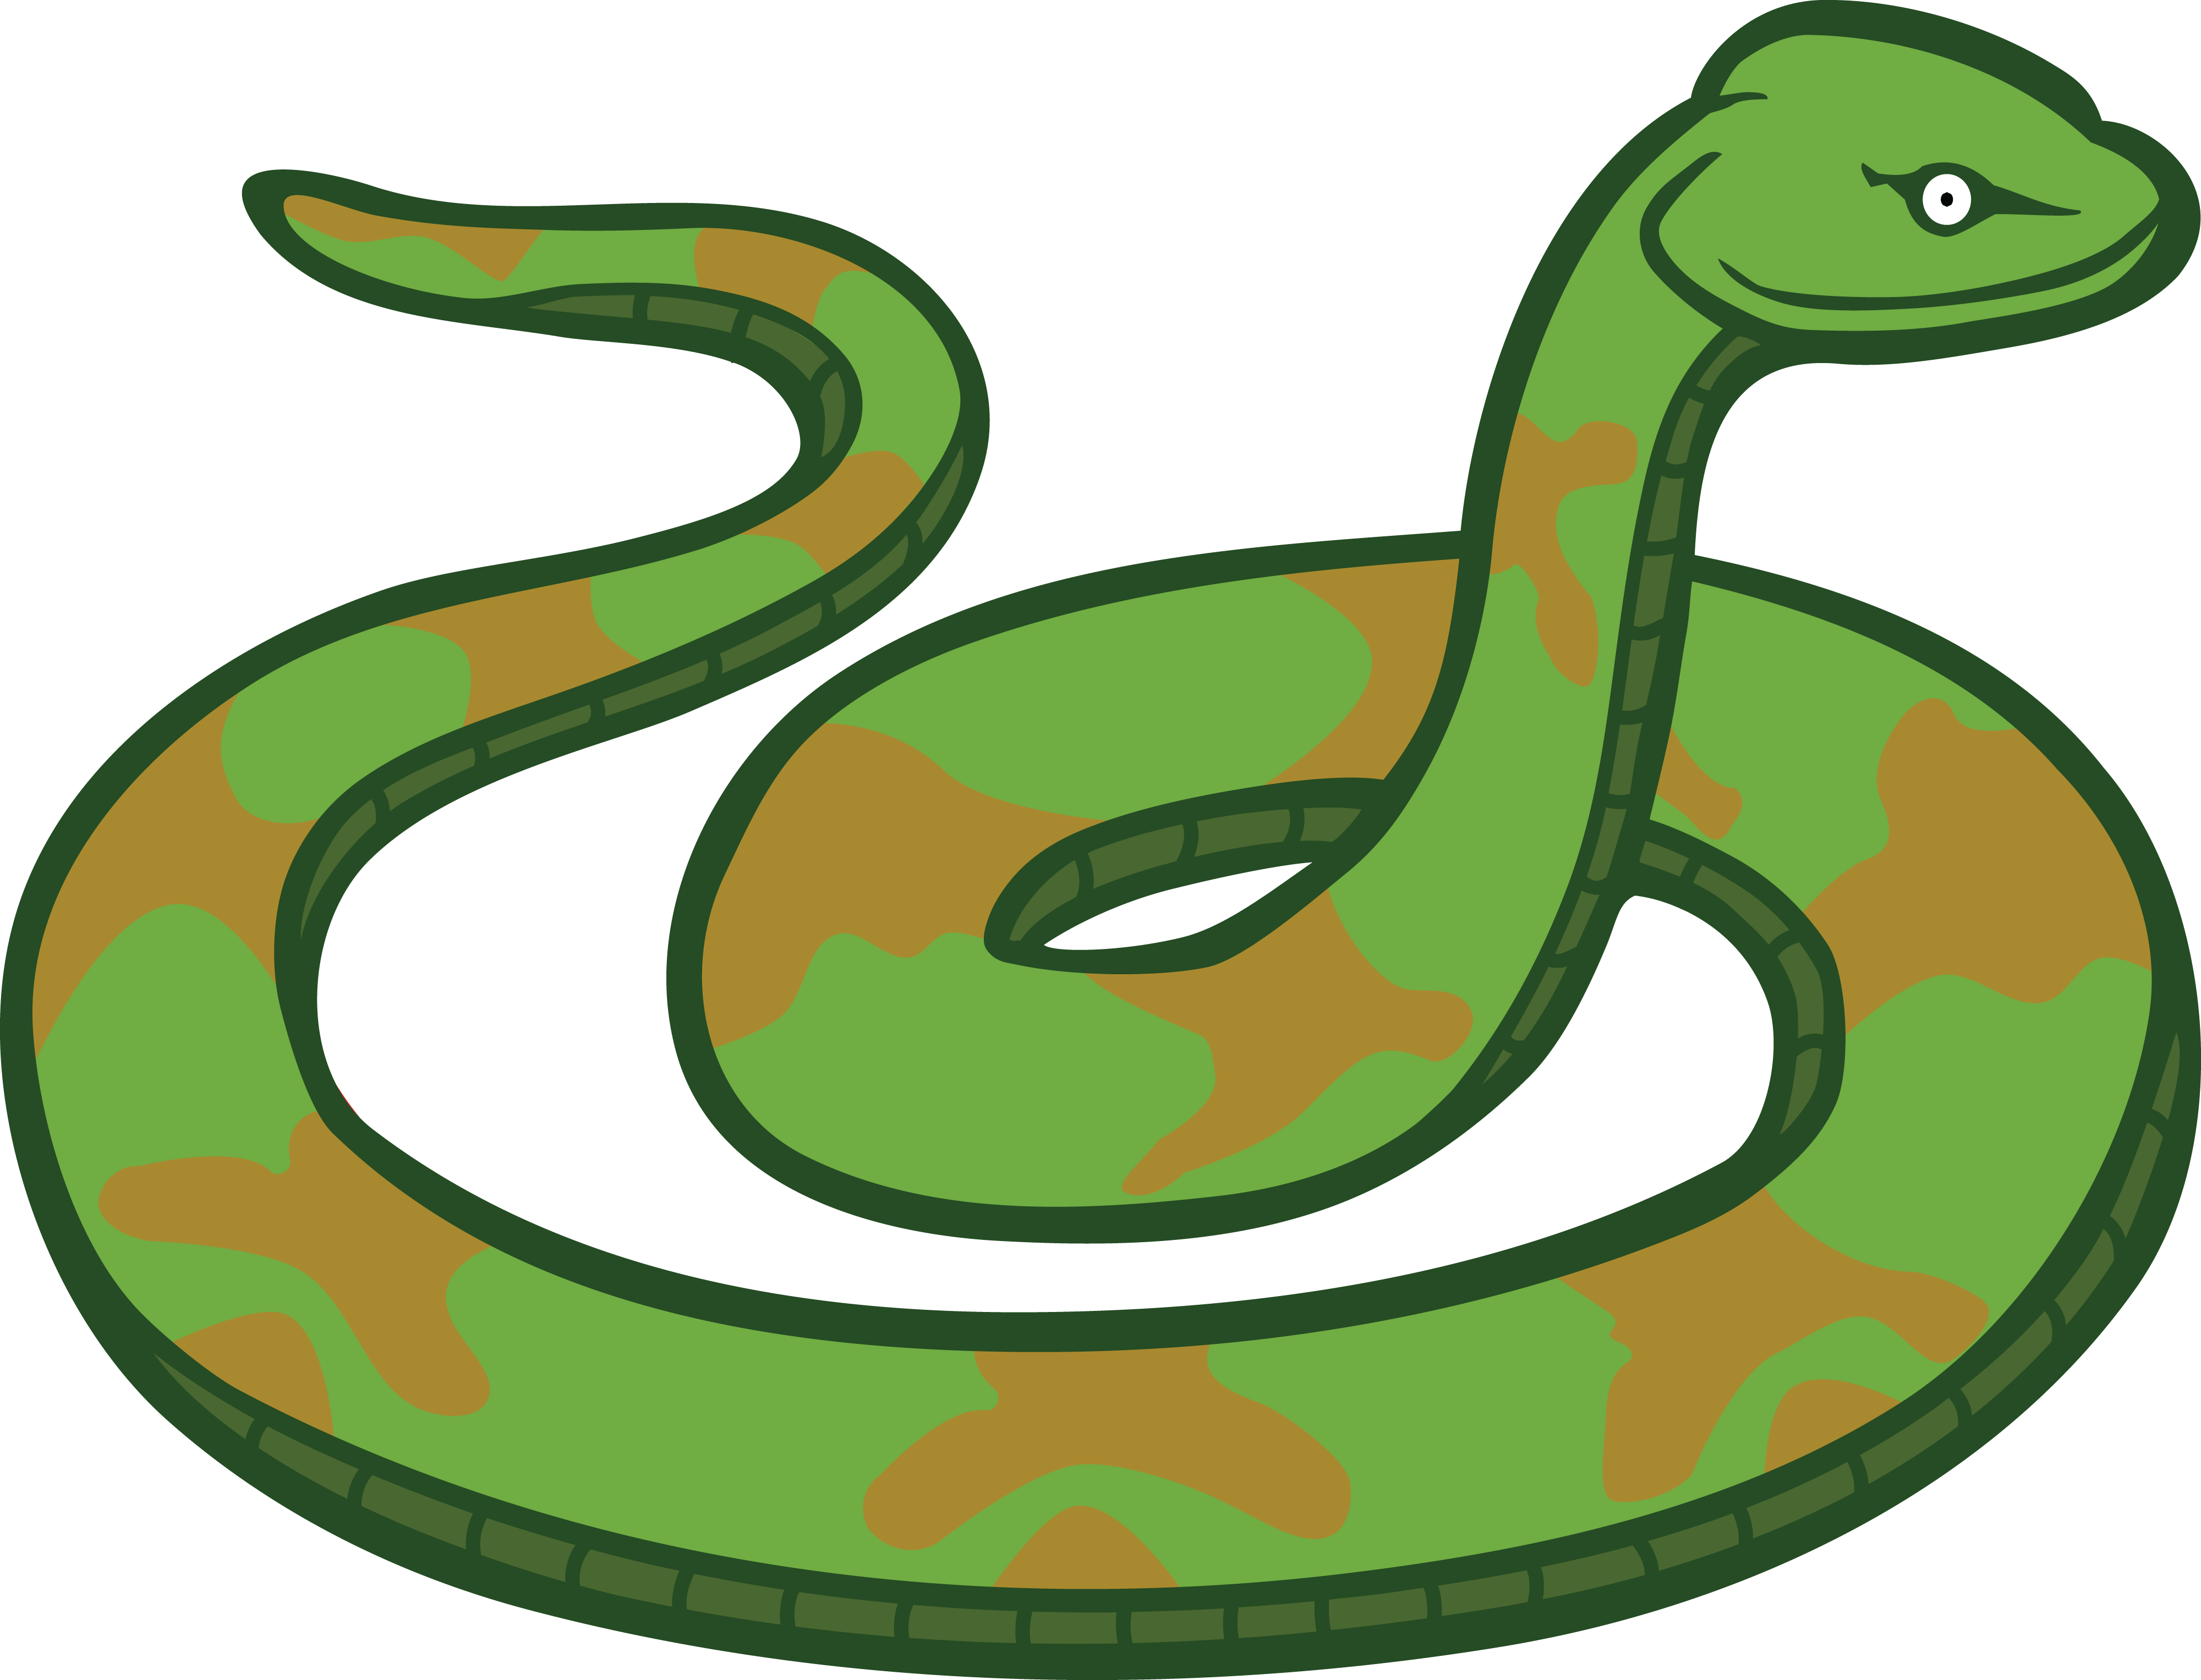 free clipart of a snake viper logos clipart viper clip art free